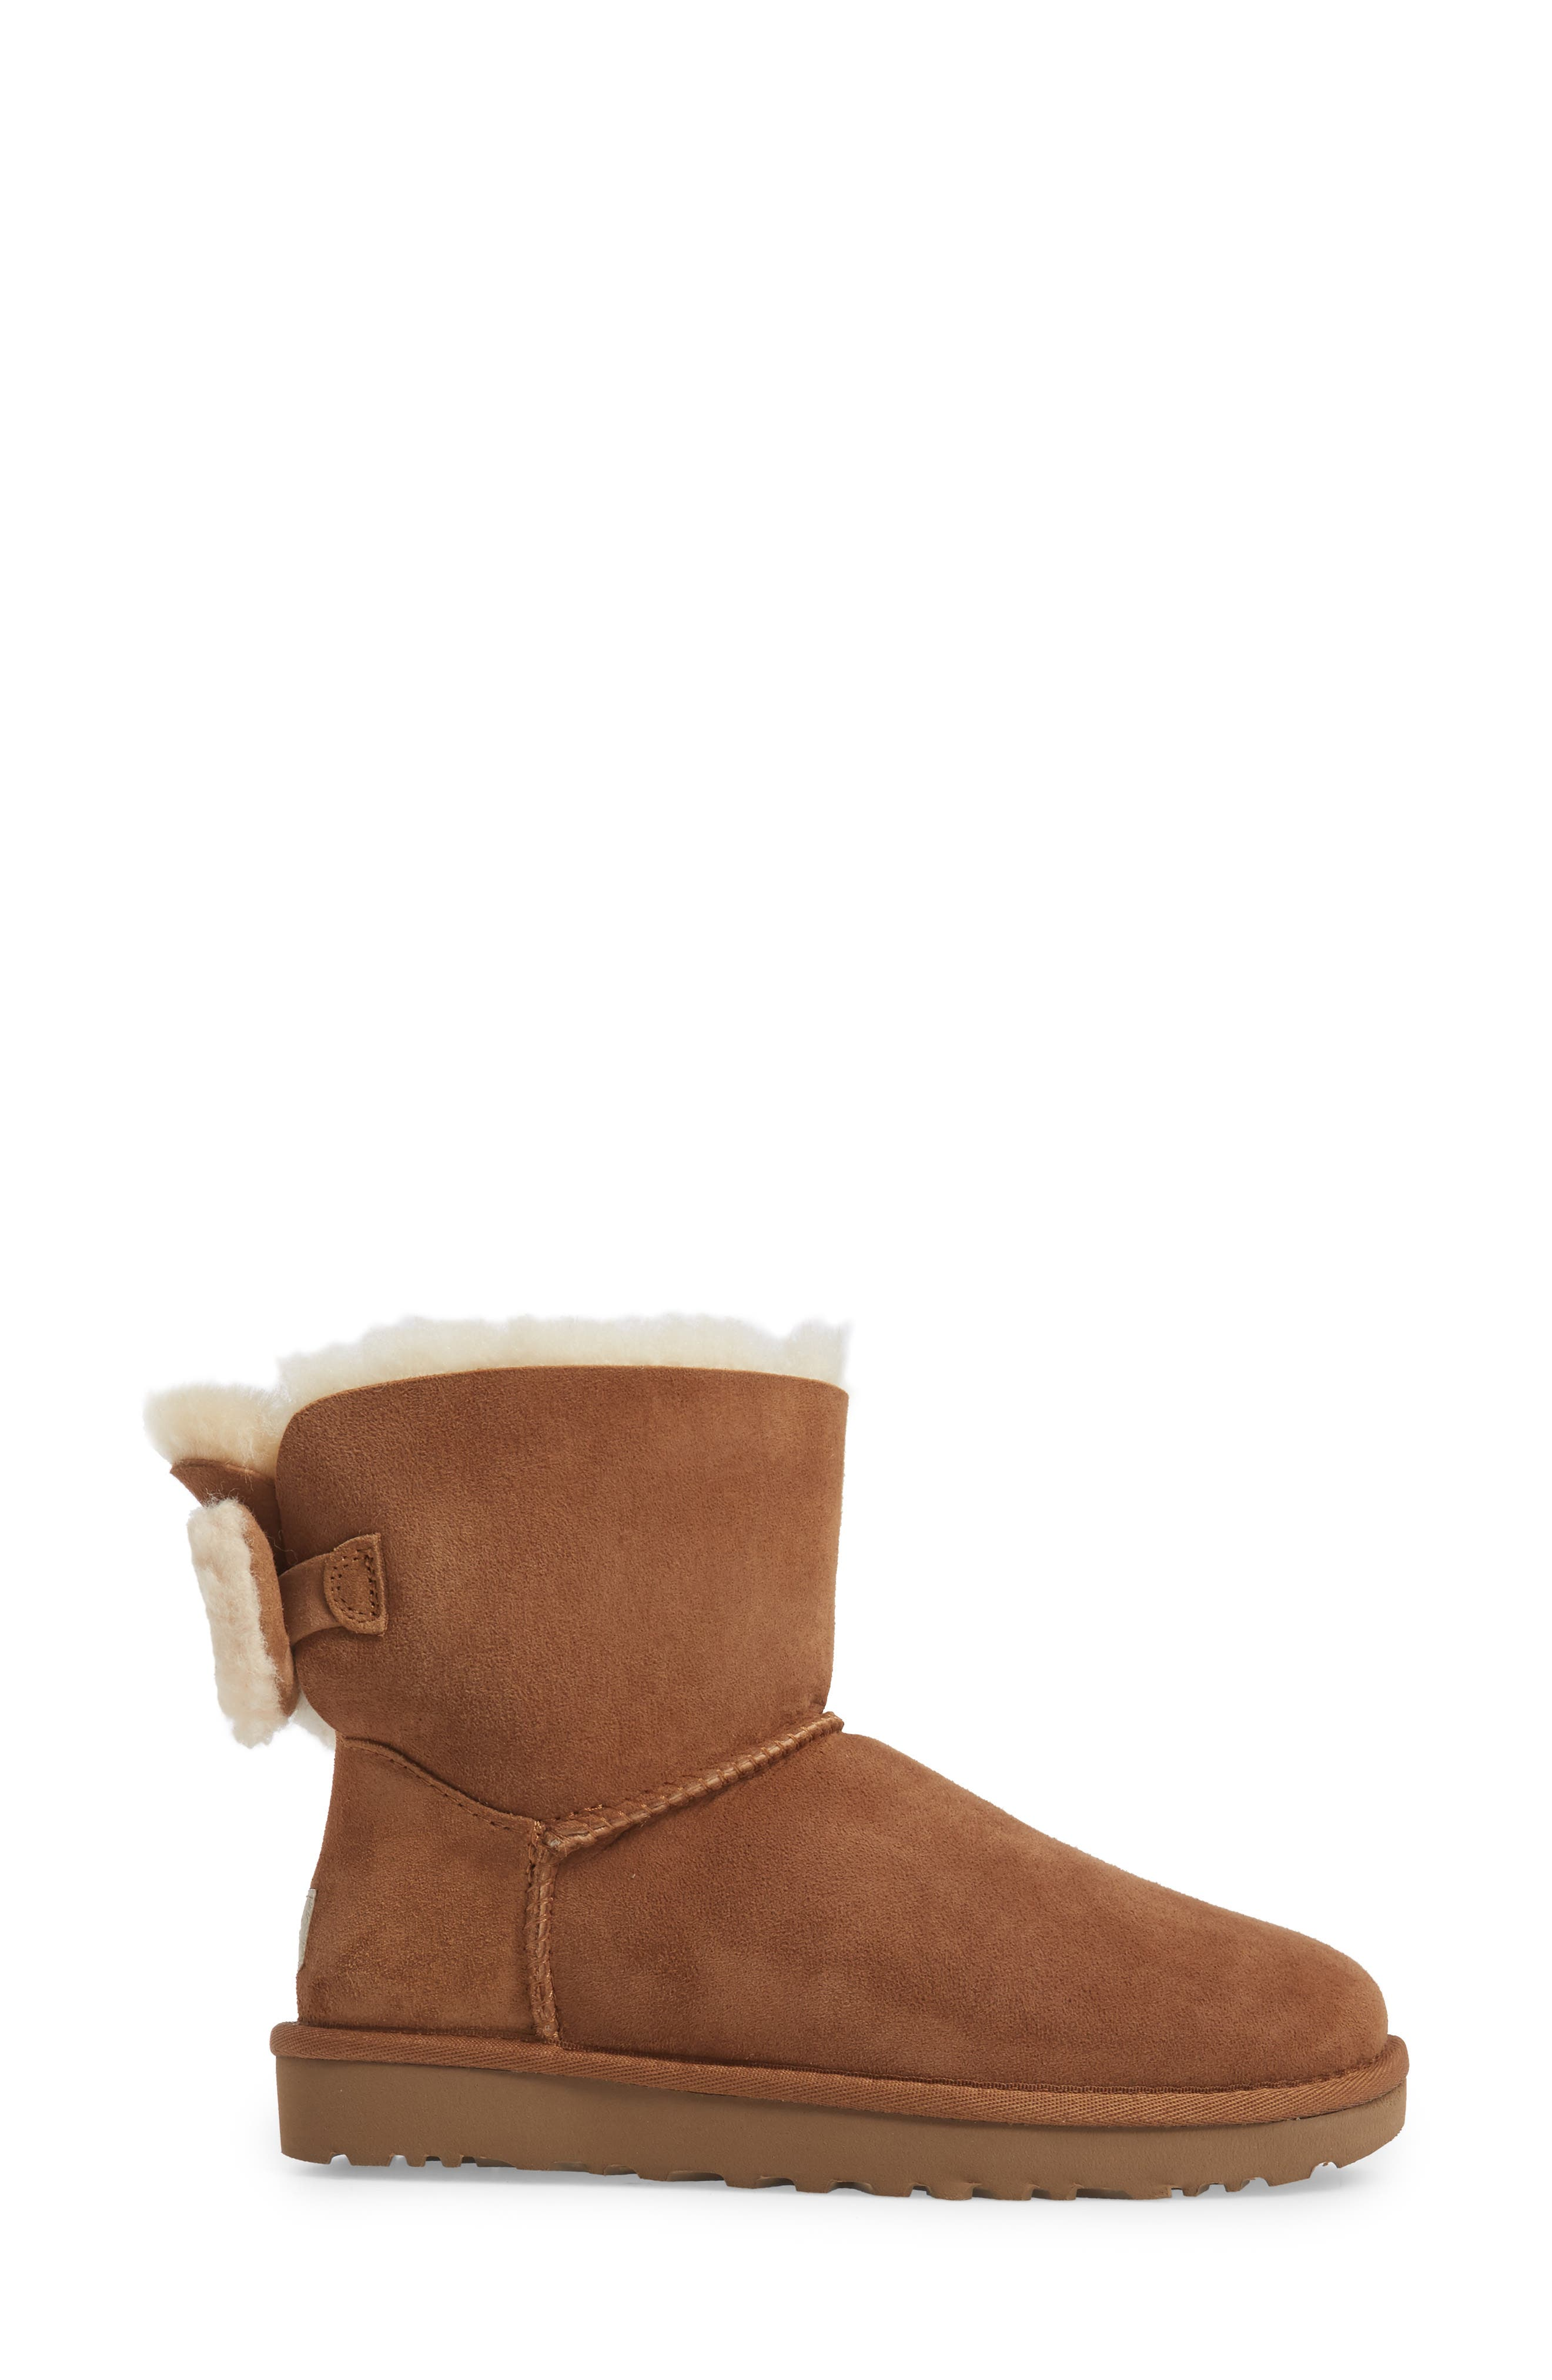 Arielle Genuine Shearling Bootie,                             Alternate thumbnail 8, color,